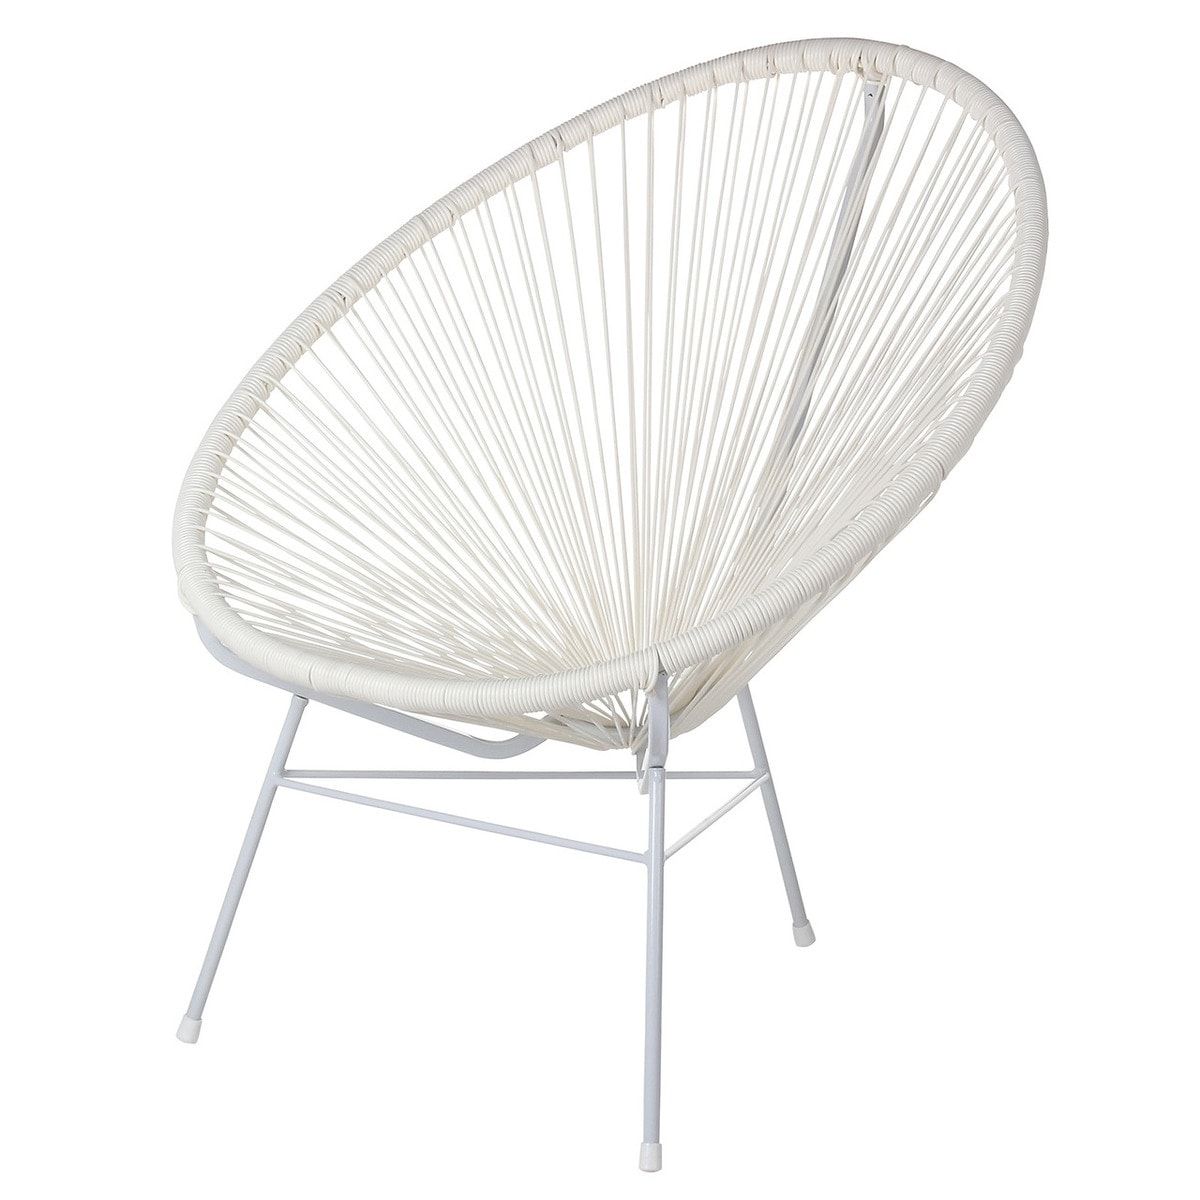 Stupendous Handmade Acapulco Pure White Woven Lounge Chair China Gmtry Best Dining Table And Chair Ideas Images Gmtryco